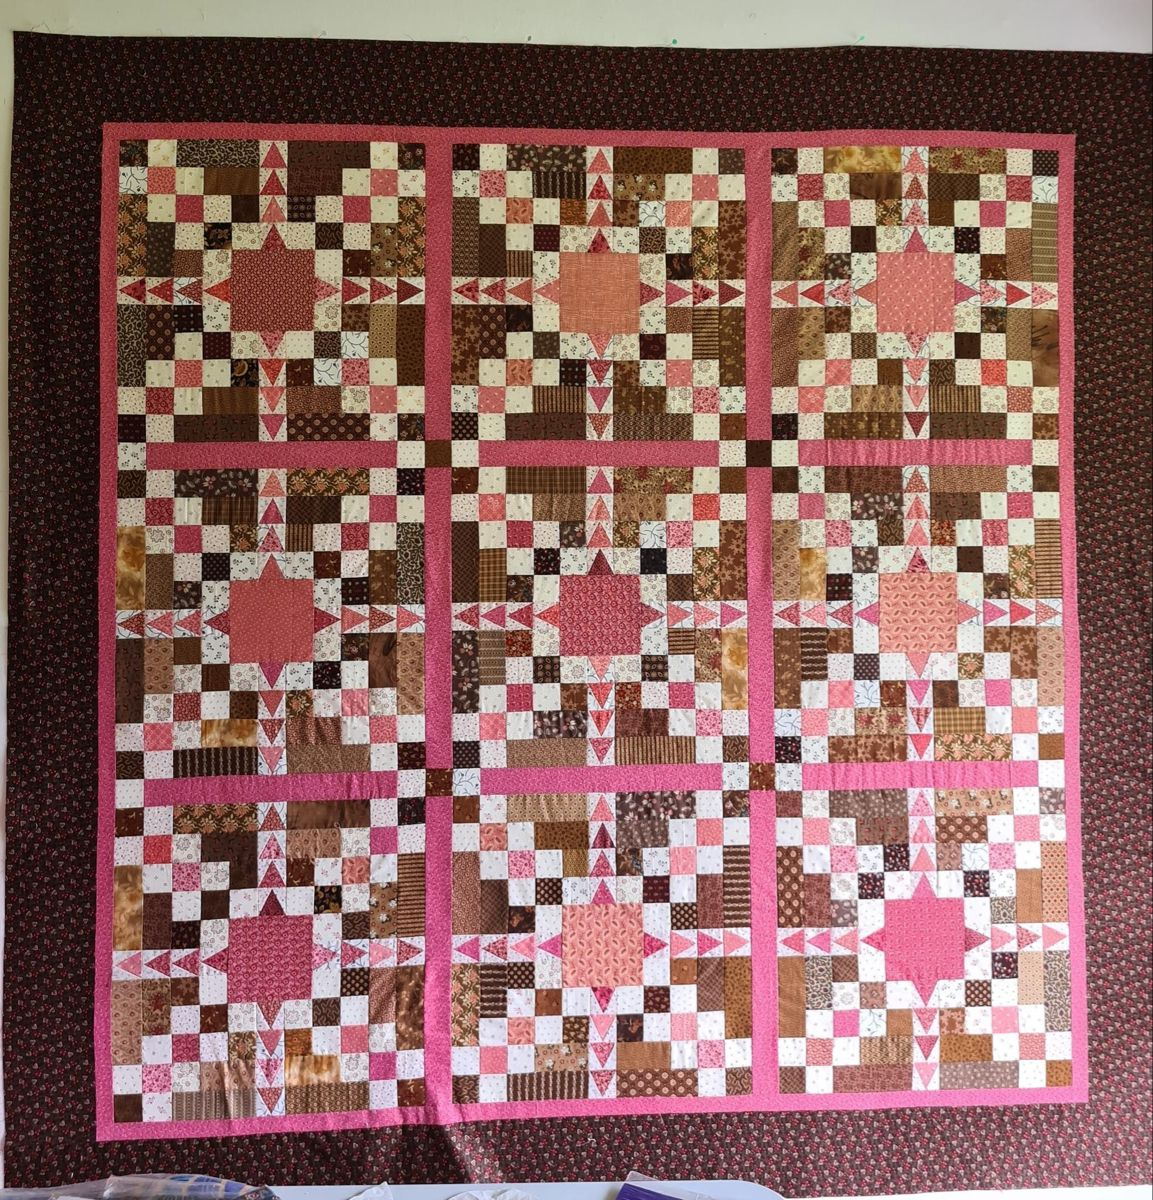 Mystery Quilt From Adelaide Quilt Guild In 2020 Quilt Guild Mystery Quilt Scrap Quilts